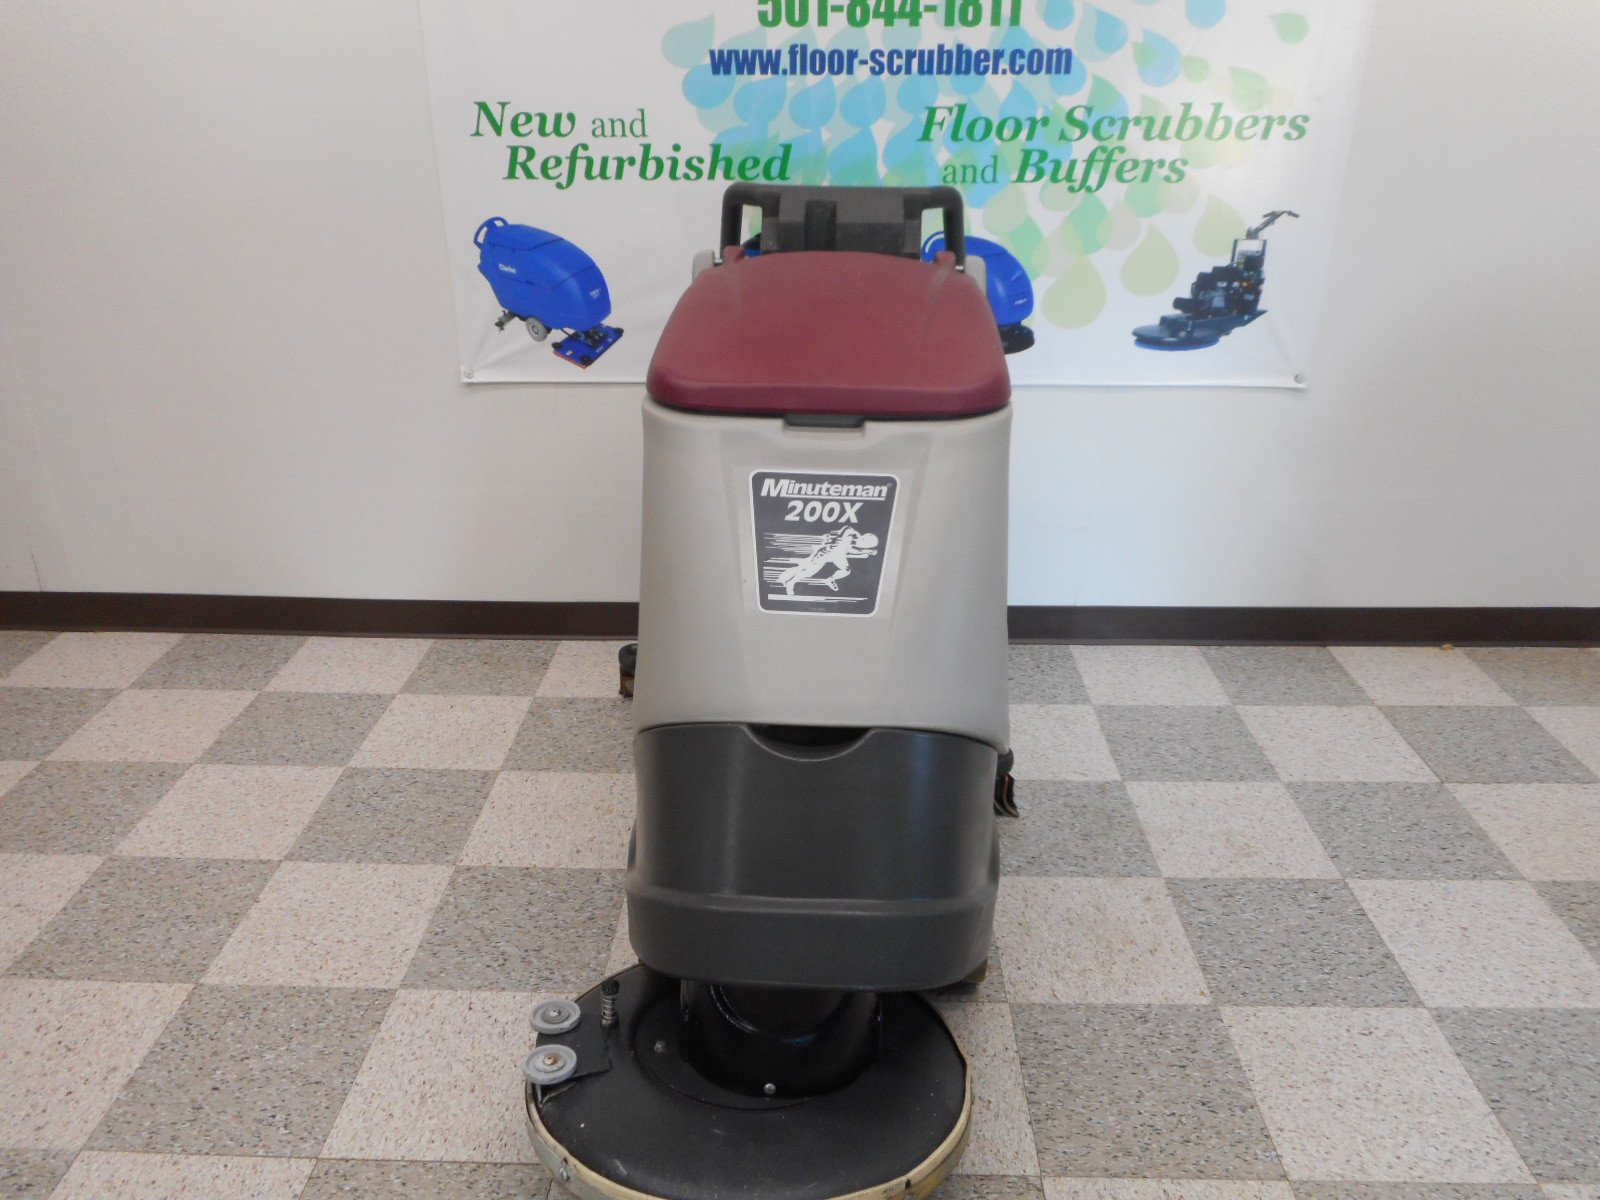 scrubber cylindrical rider ride battery minuteman side floors on floor condor powered advance images used preowned front parts